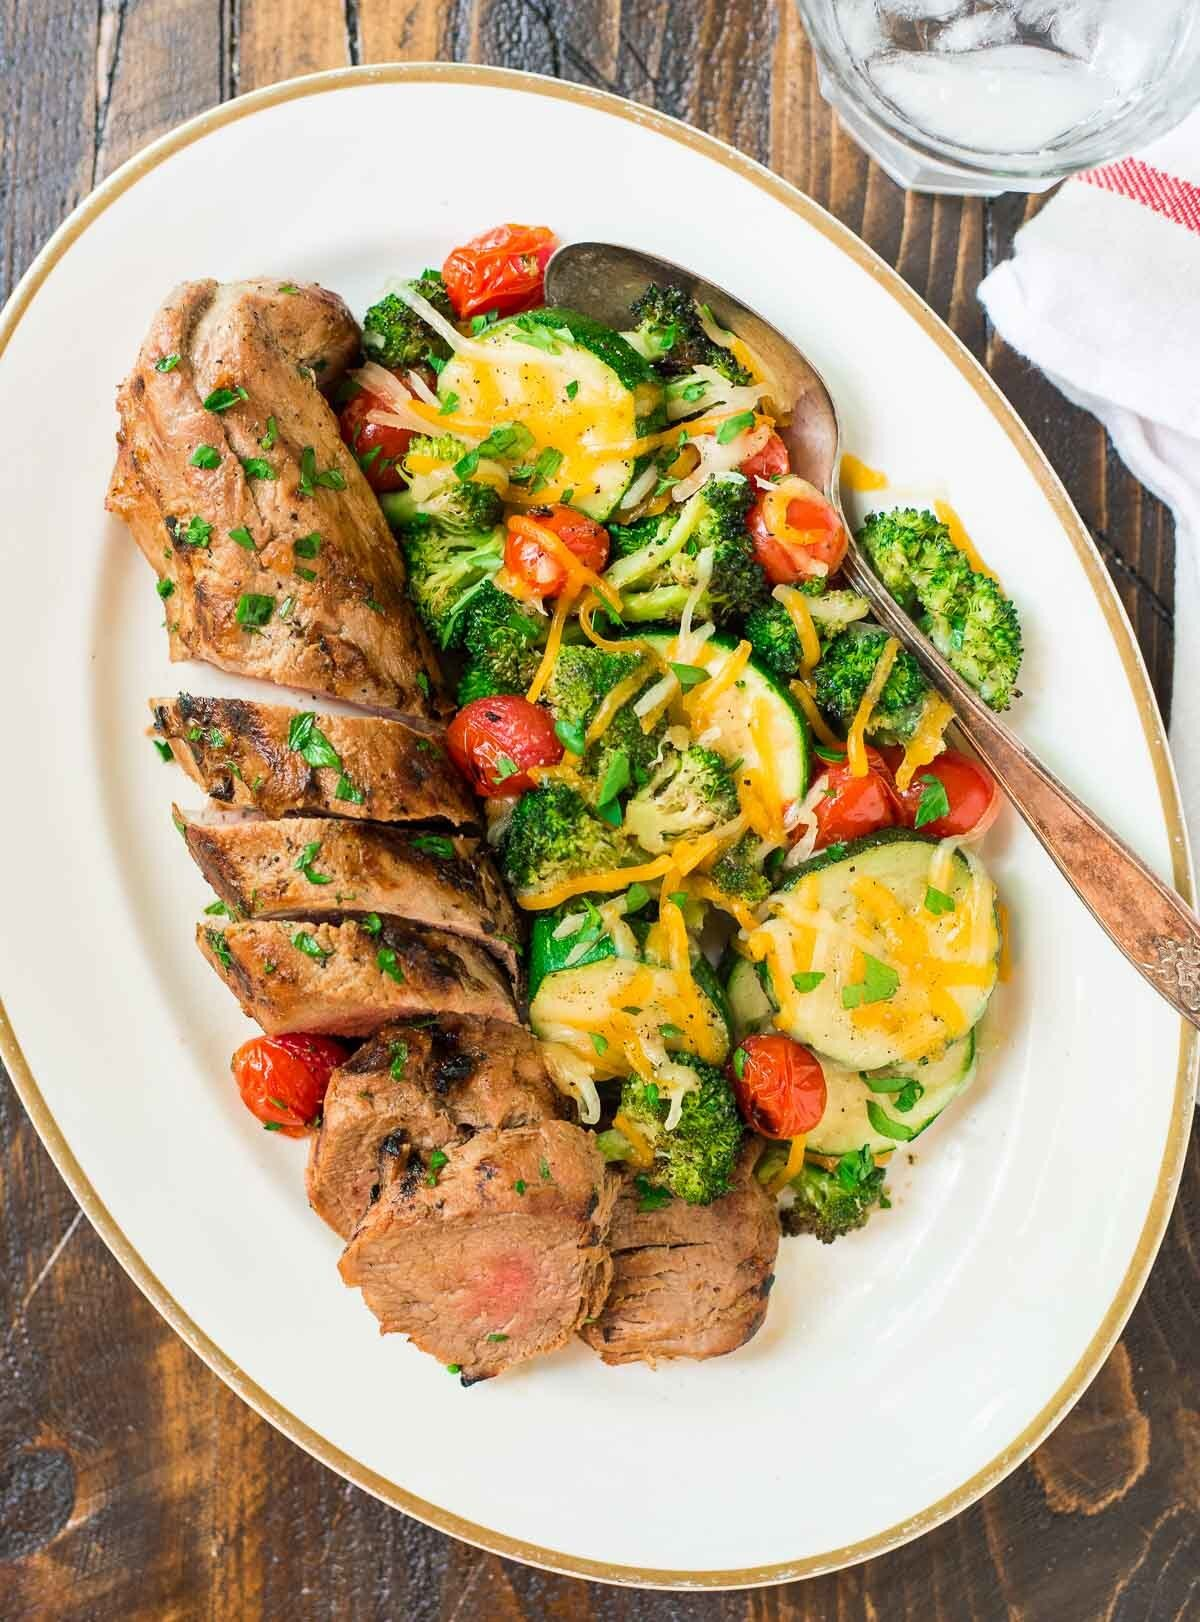 Mustard Pork Tenderloin with Grilled Vegetables in Foil